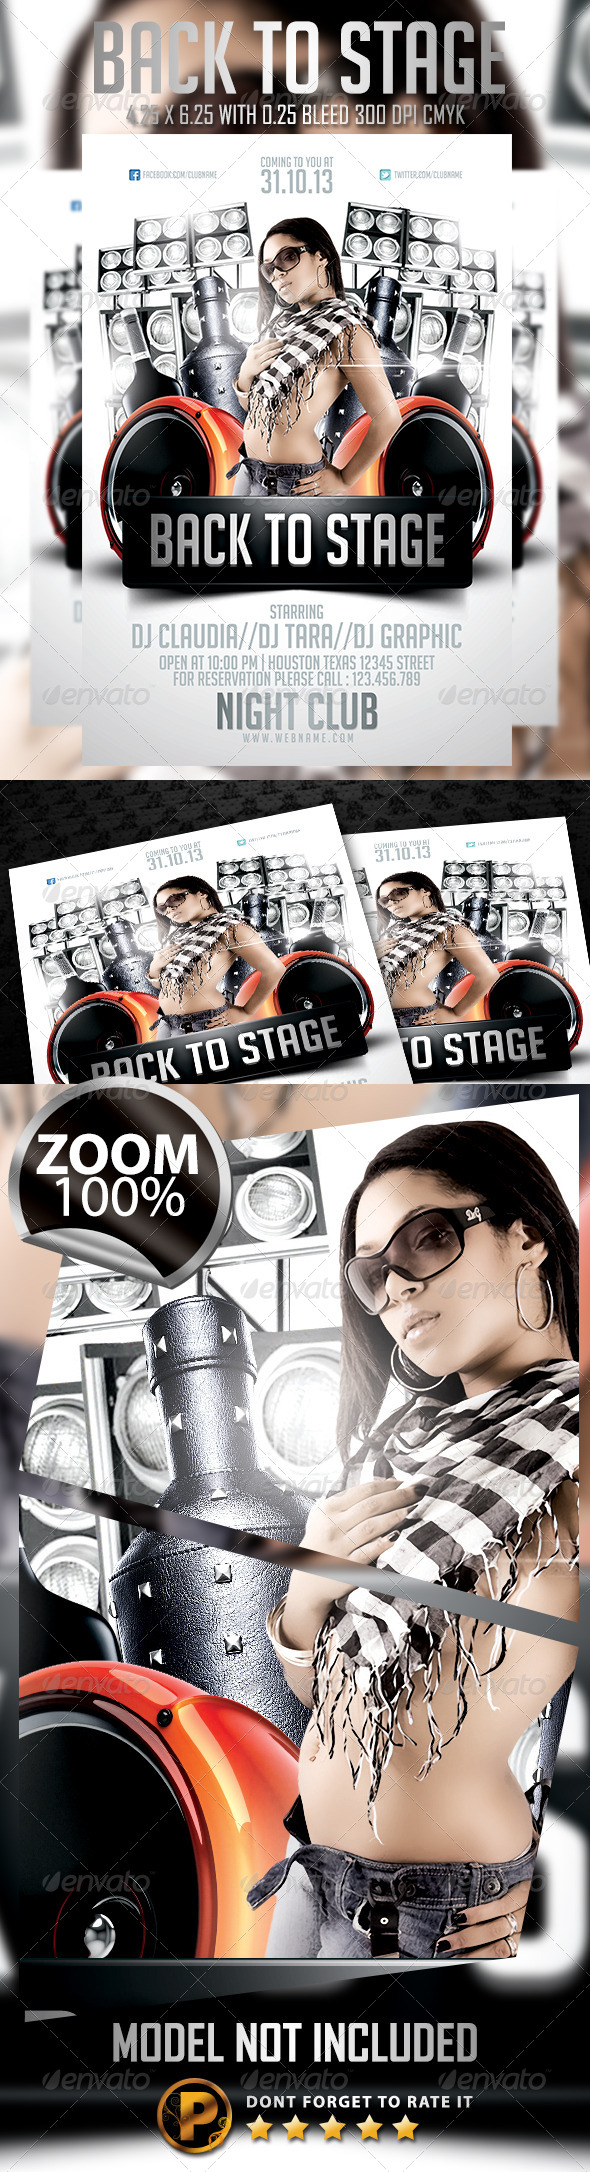 Back To Stage Flyer Template - Clubs & Parties Events